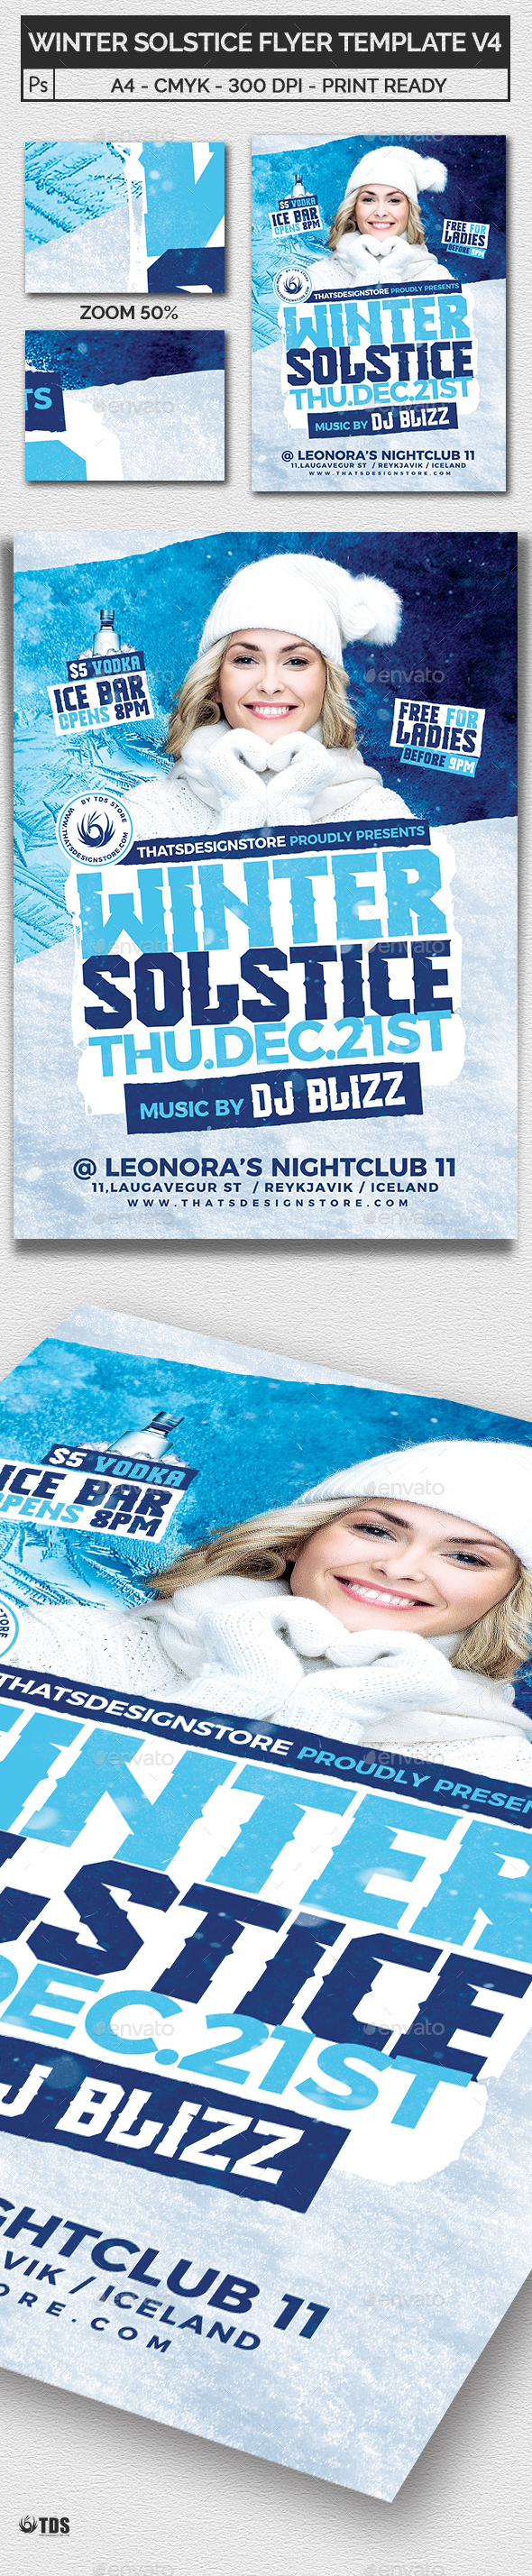 Winter Solstice Flyer Template V4 - Clubs & Parties Events